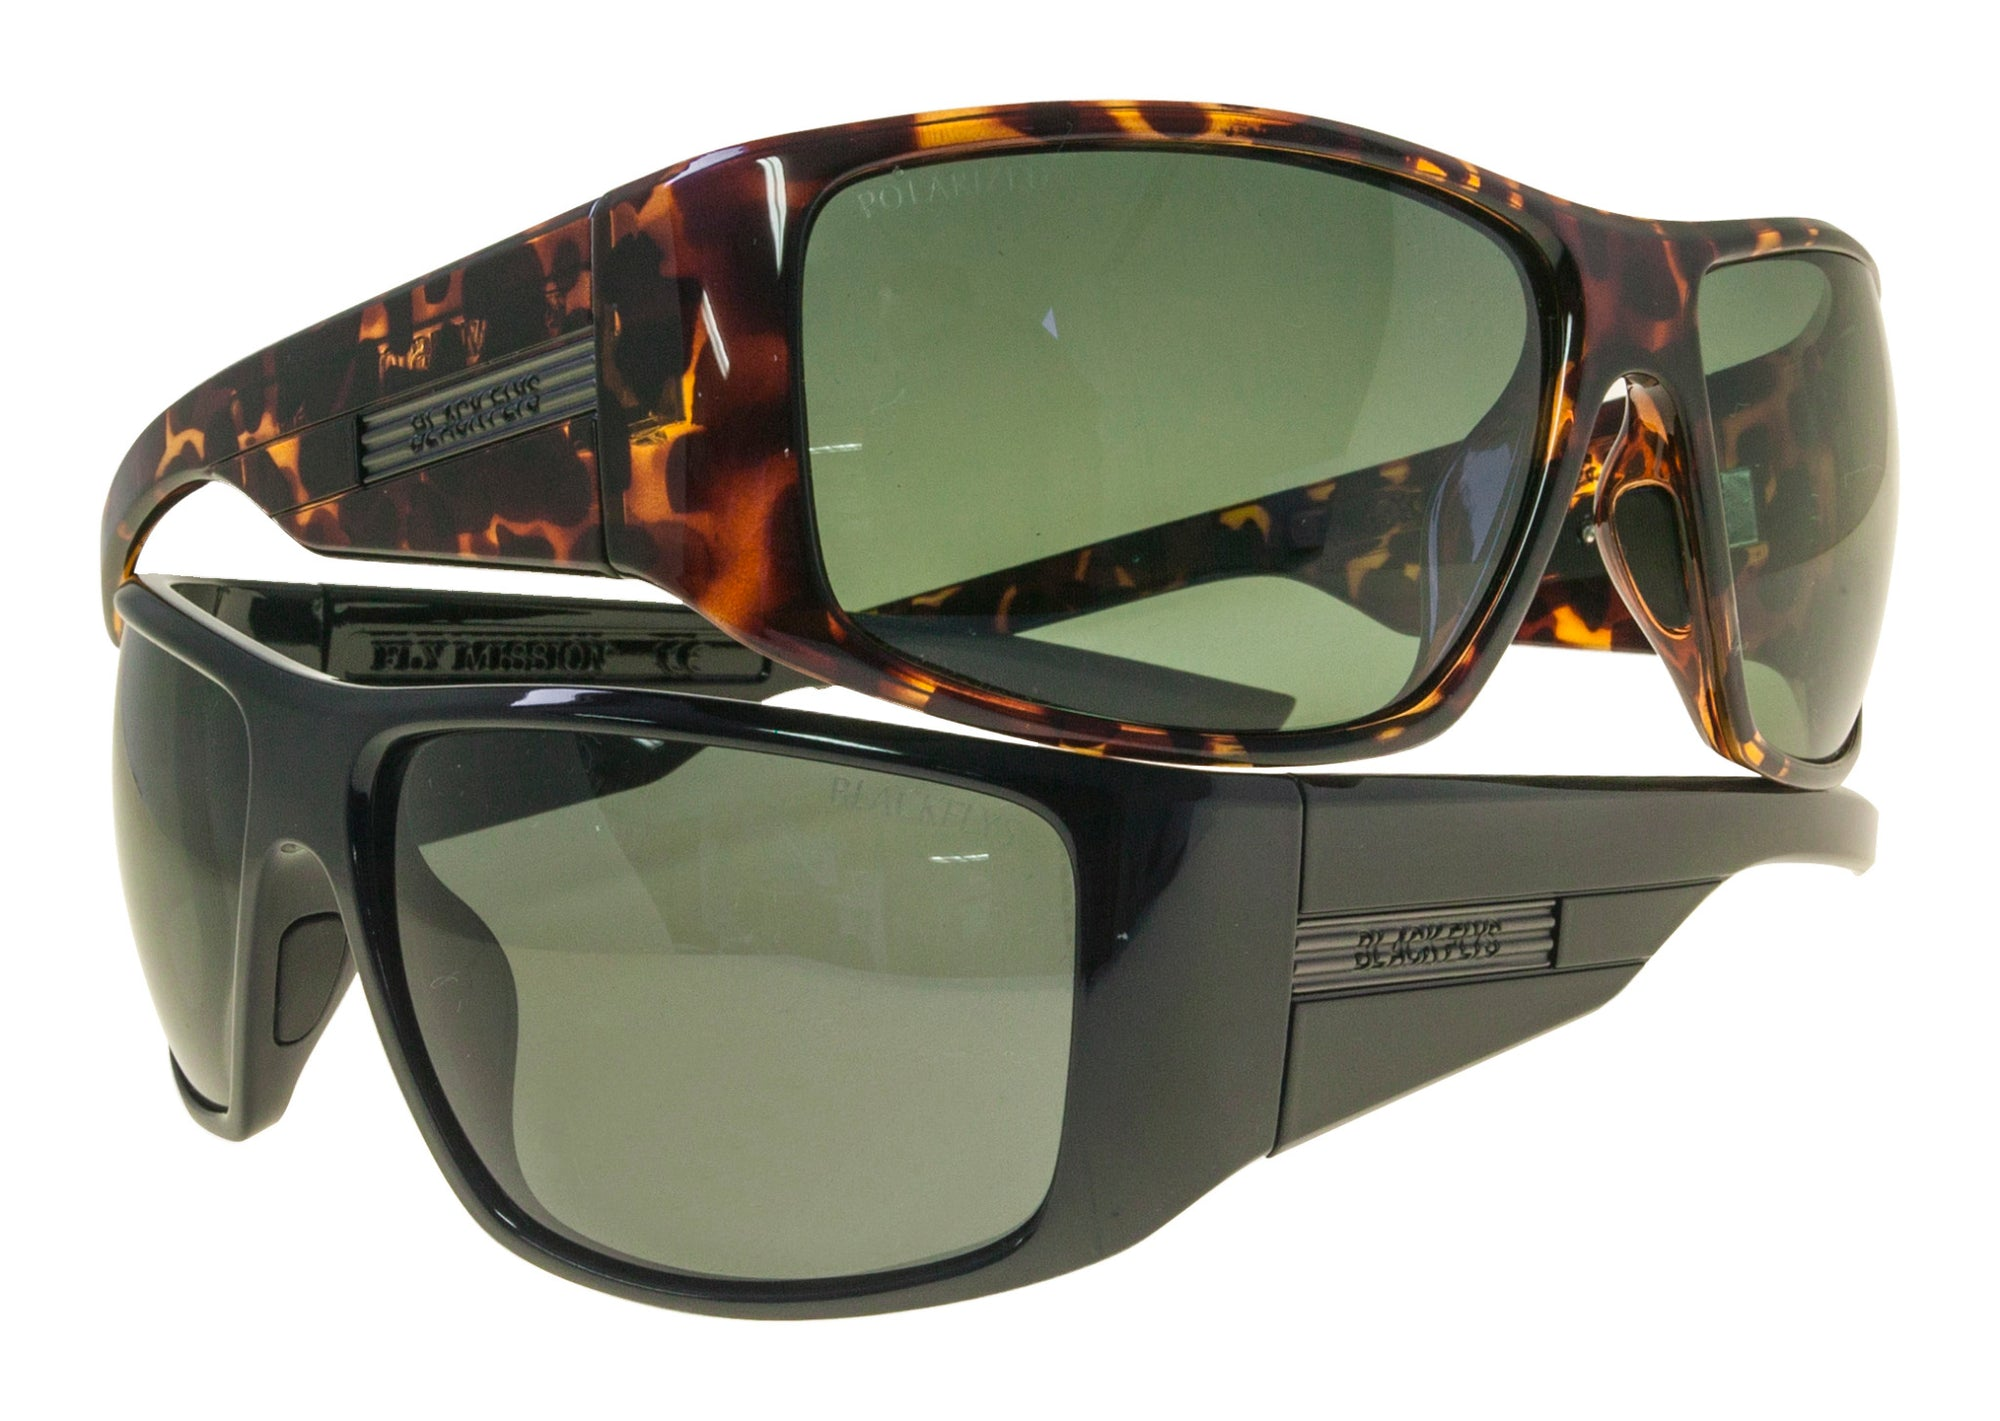 Fly Mission Polarized *Limited Ed.